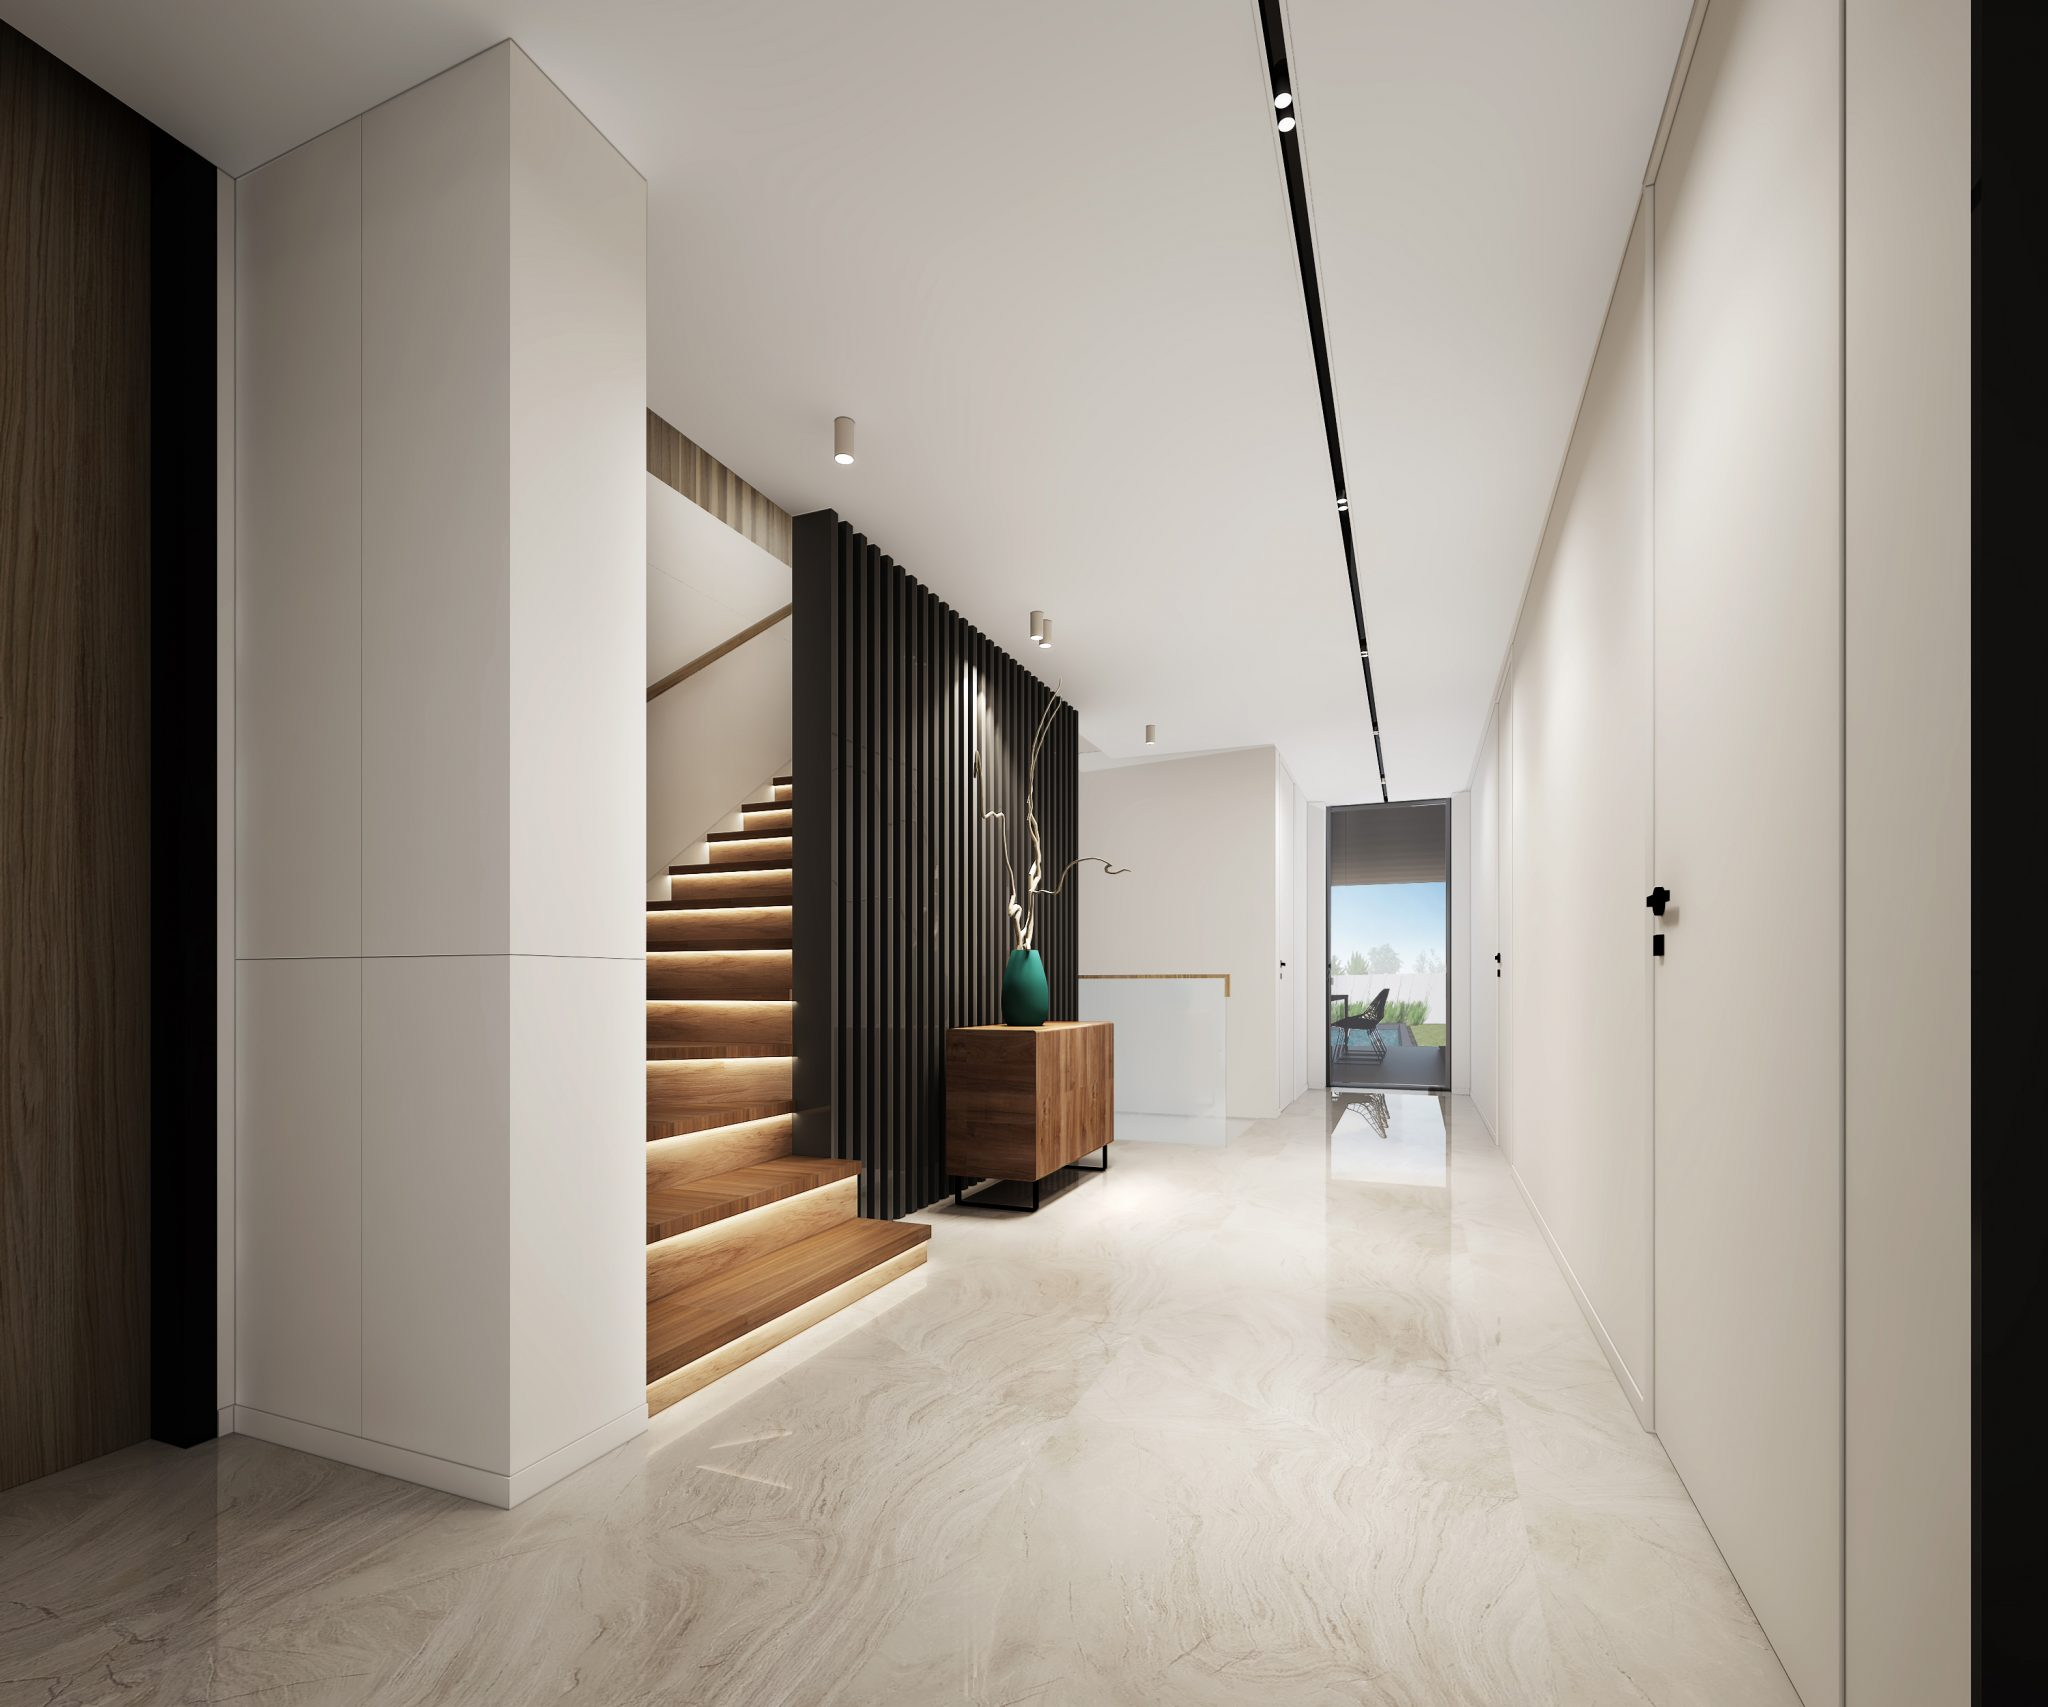 03_Stairs